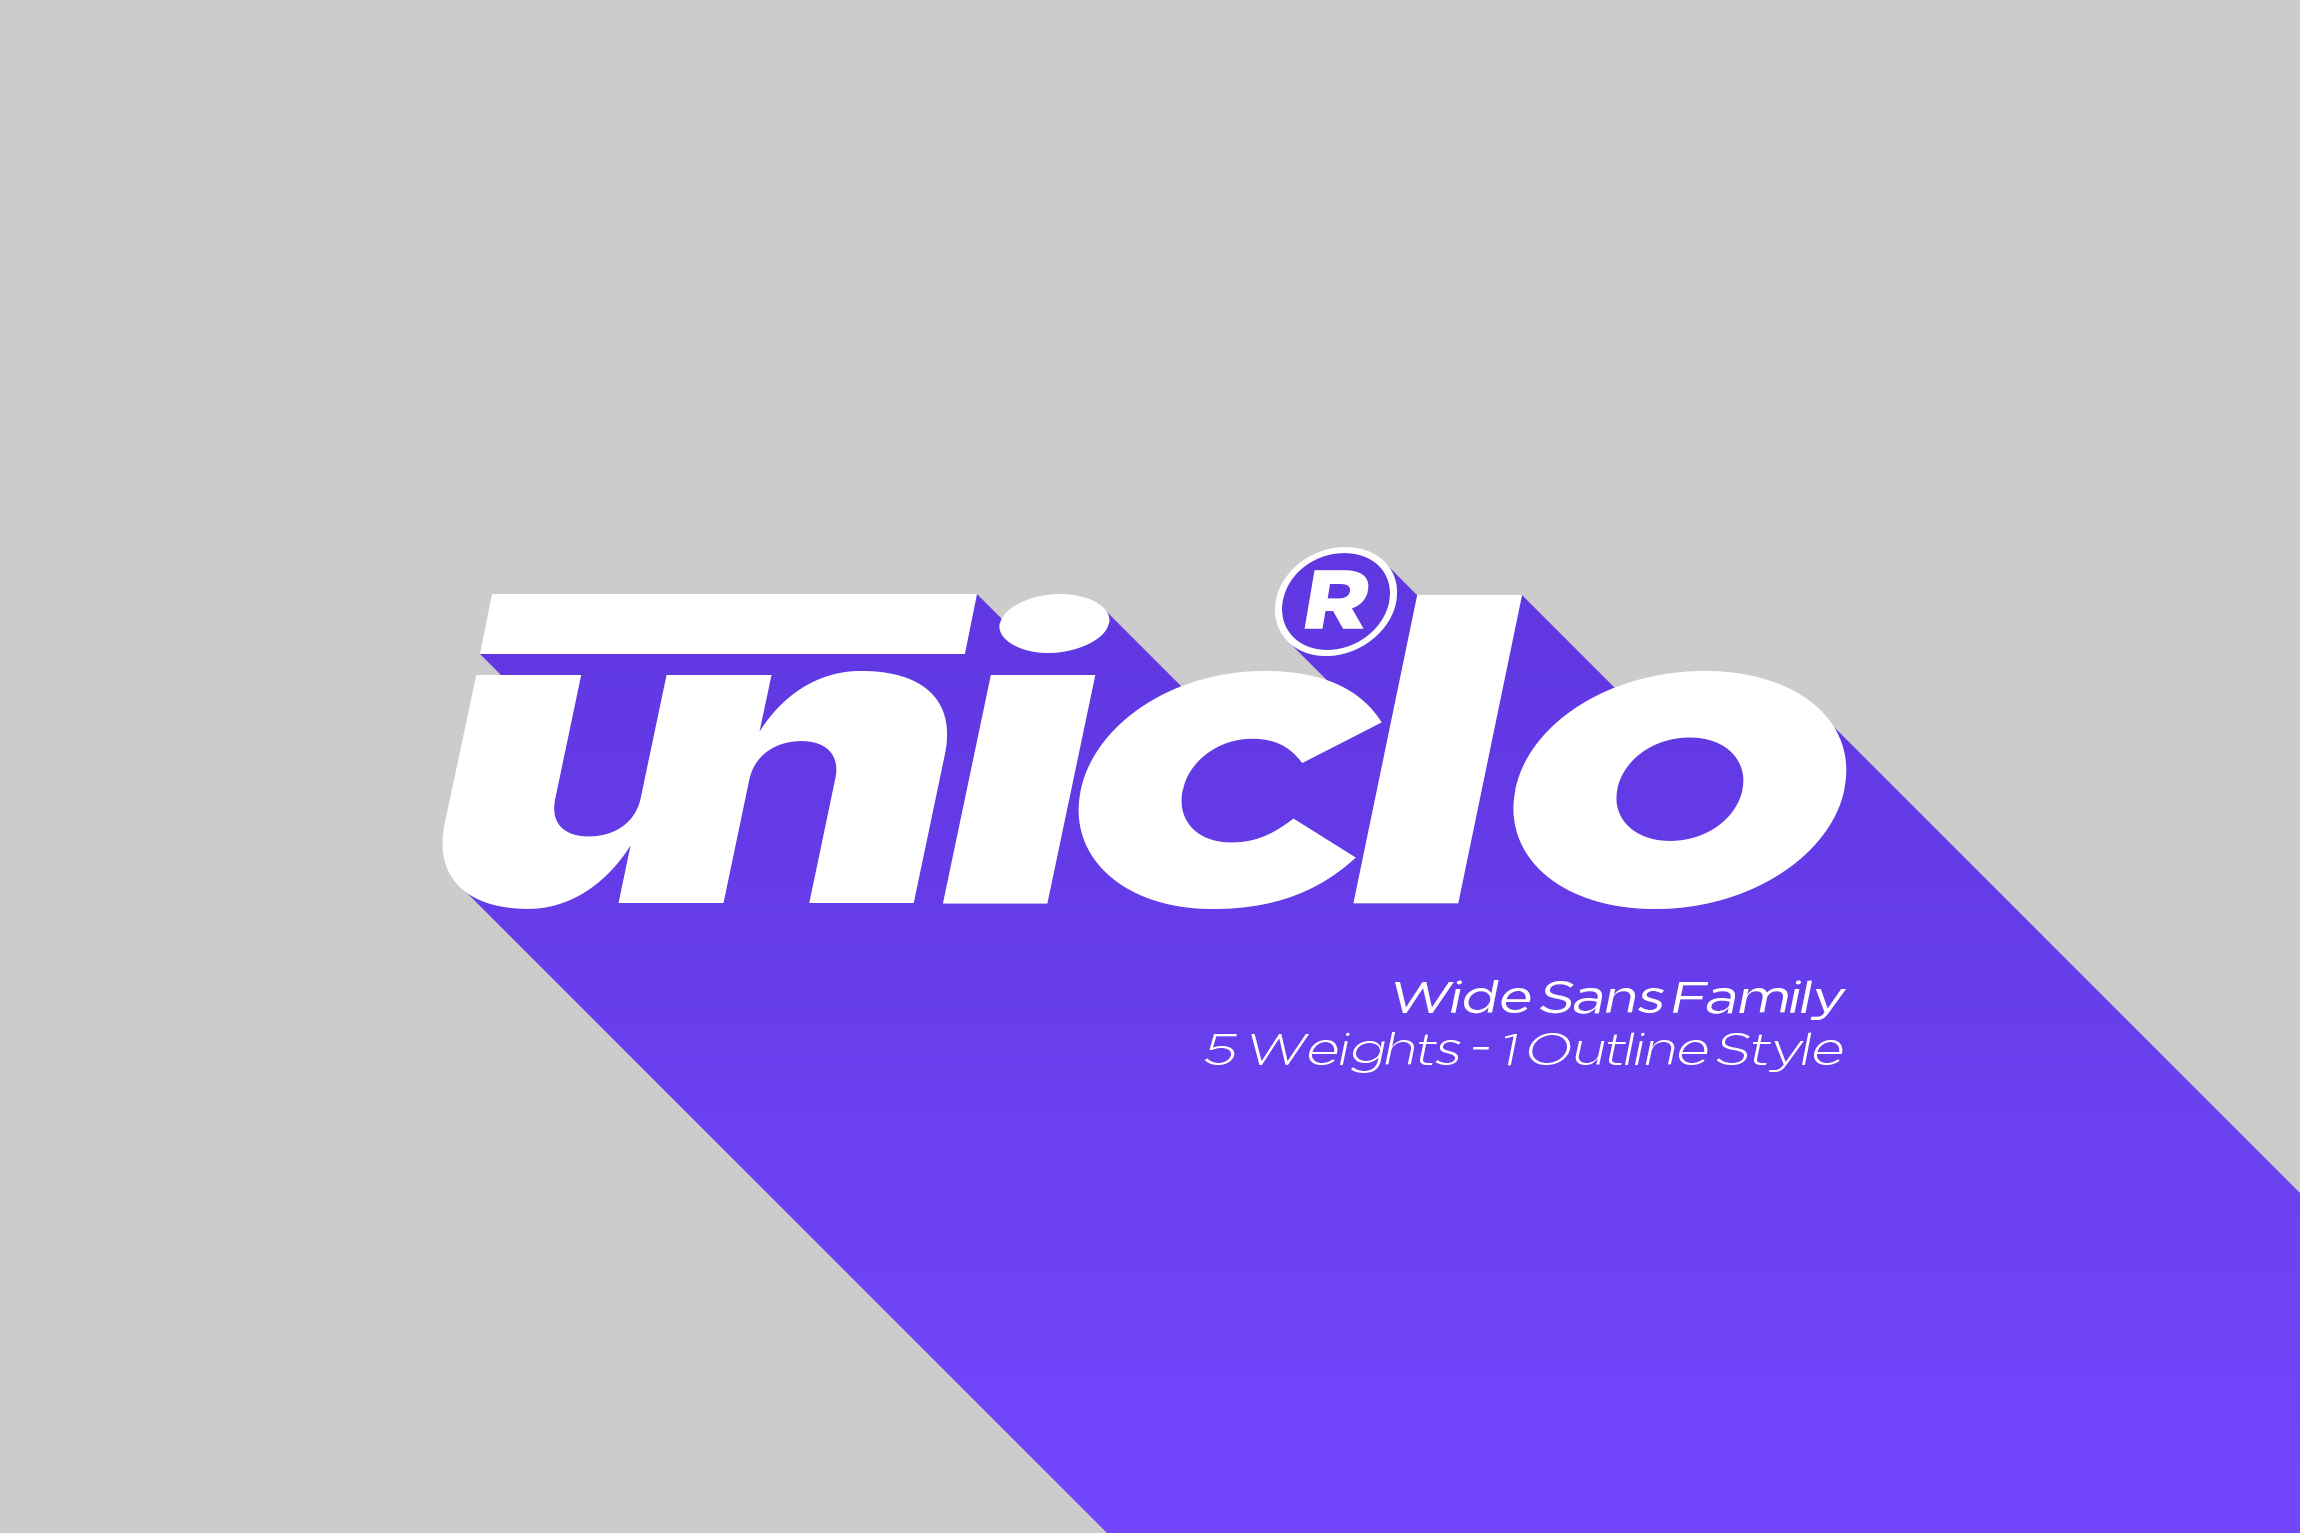 Uniclo Wide Sans Family Font example image 1